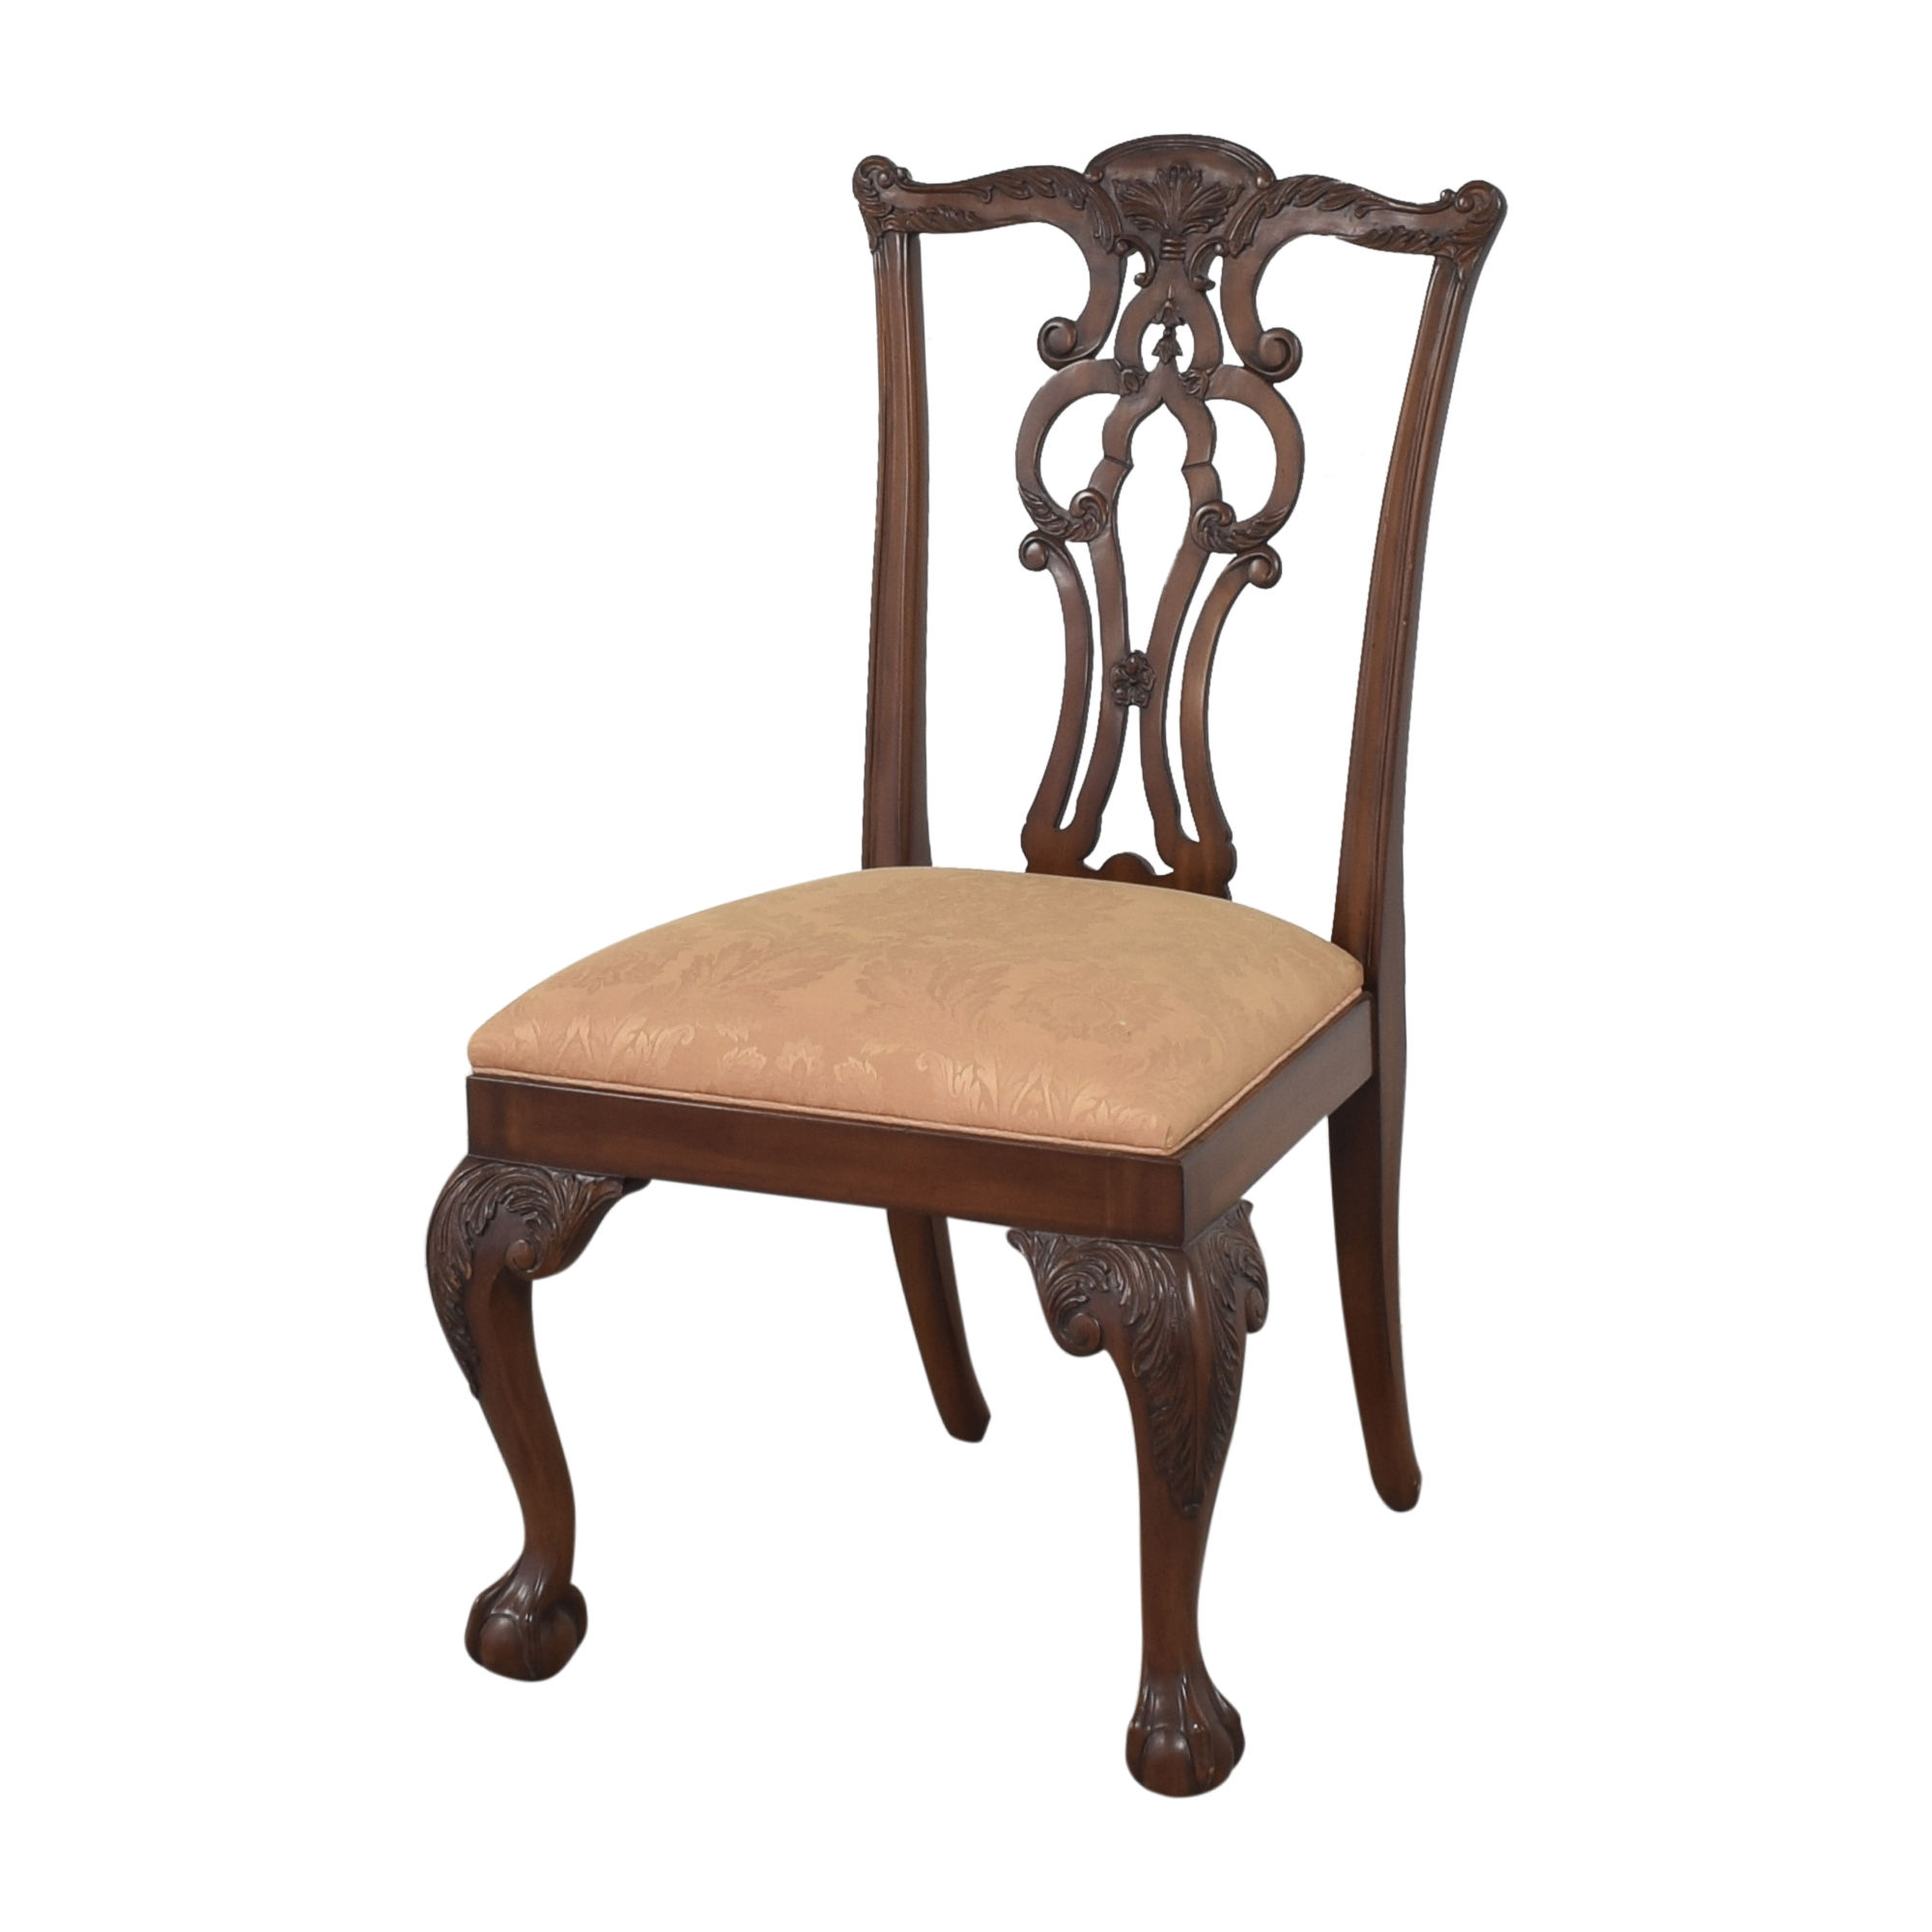 Ethan Allen Ethan Allen Chauncey Dining Side Chairs Brown and tan